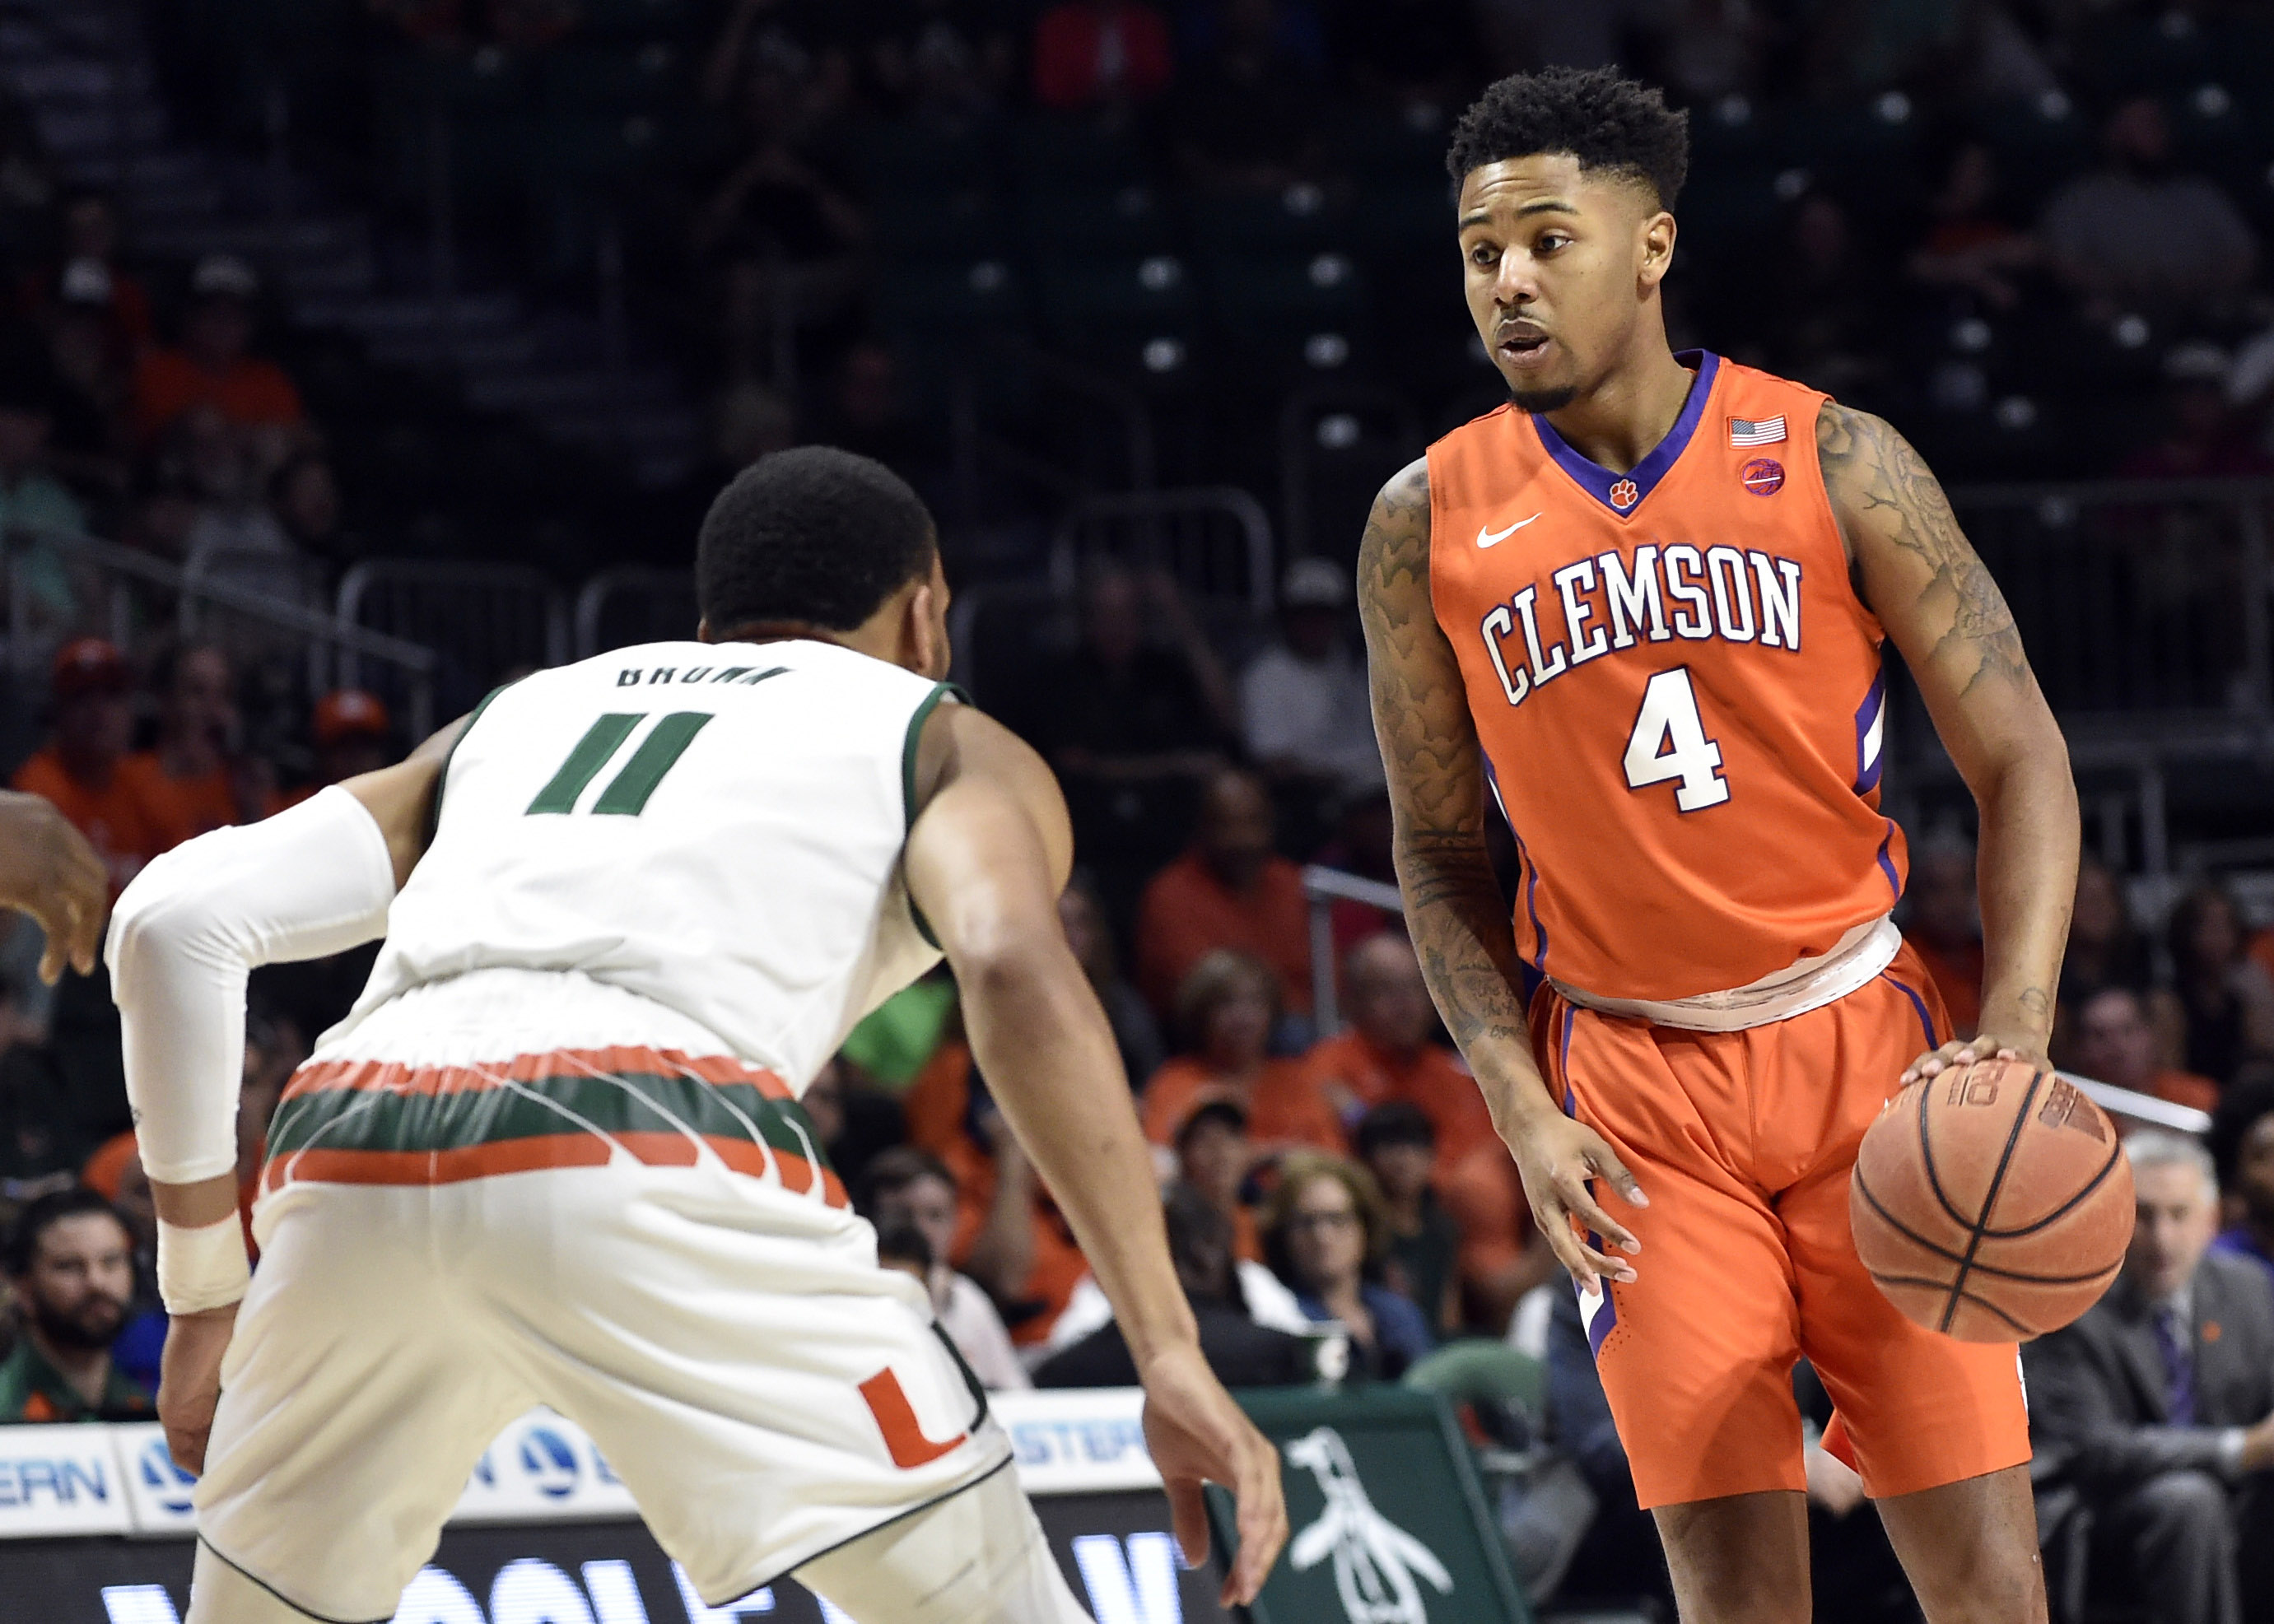 Clemson Basketball: Potential Replacements For Brad Brownell